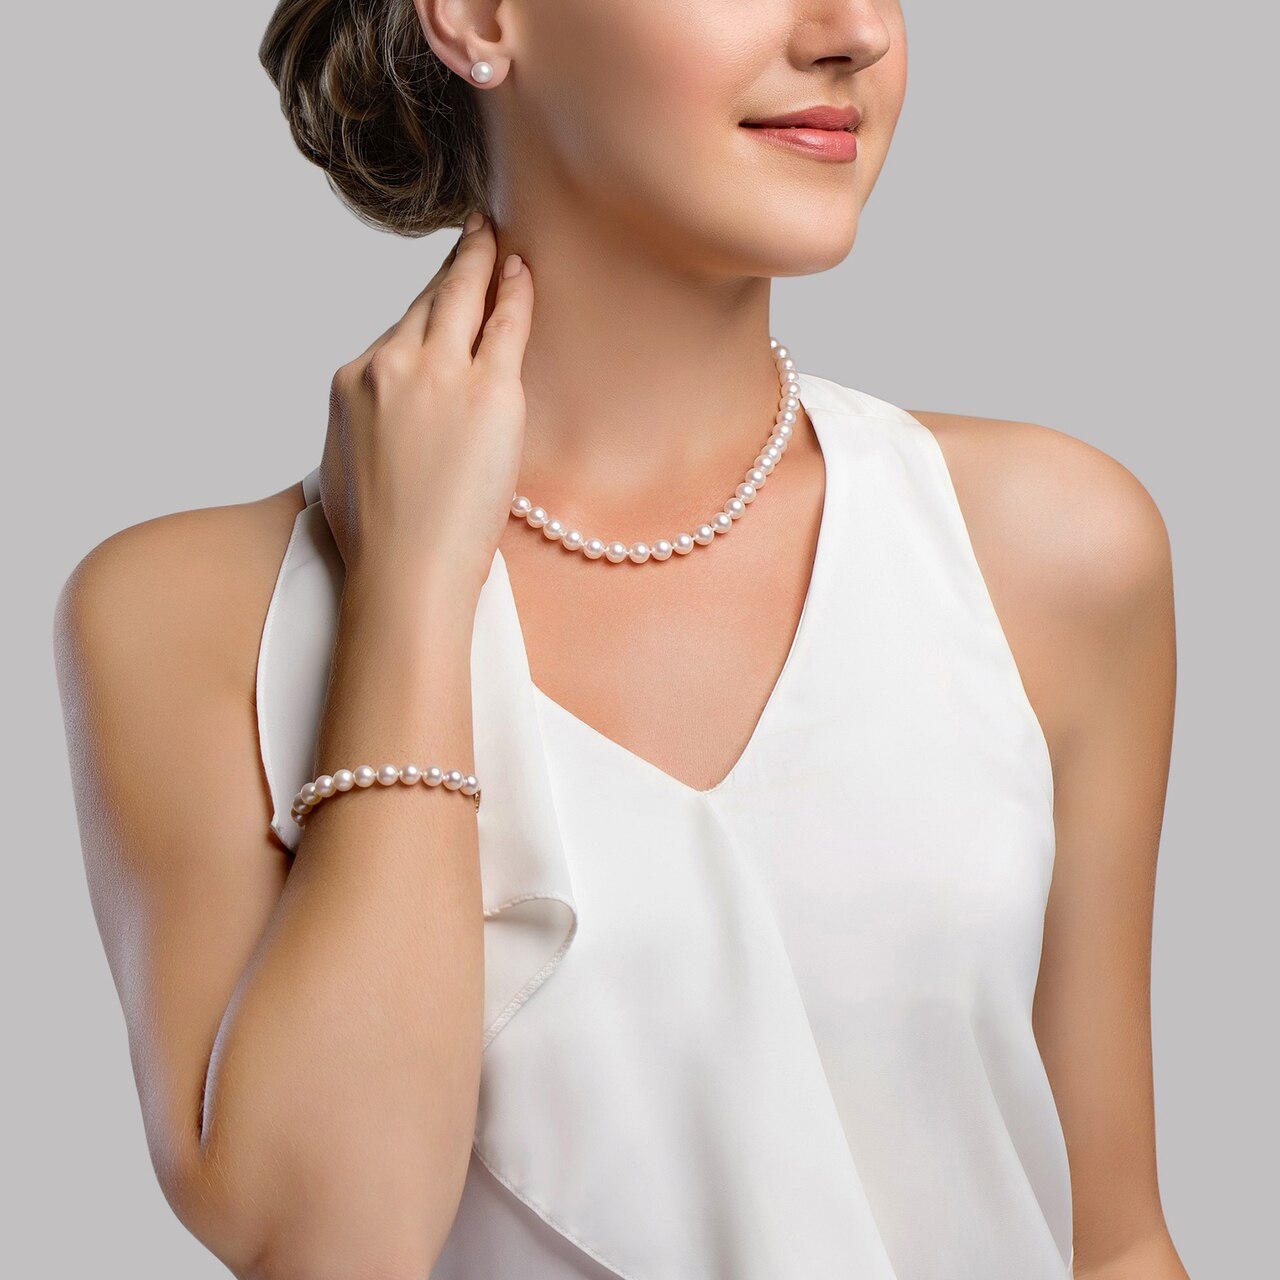 This elegant necklace, bracelet and earring set features 8.0-8.5mm Hanadama Akoya pearls